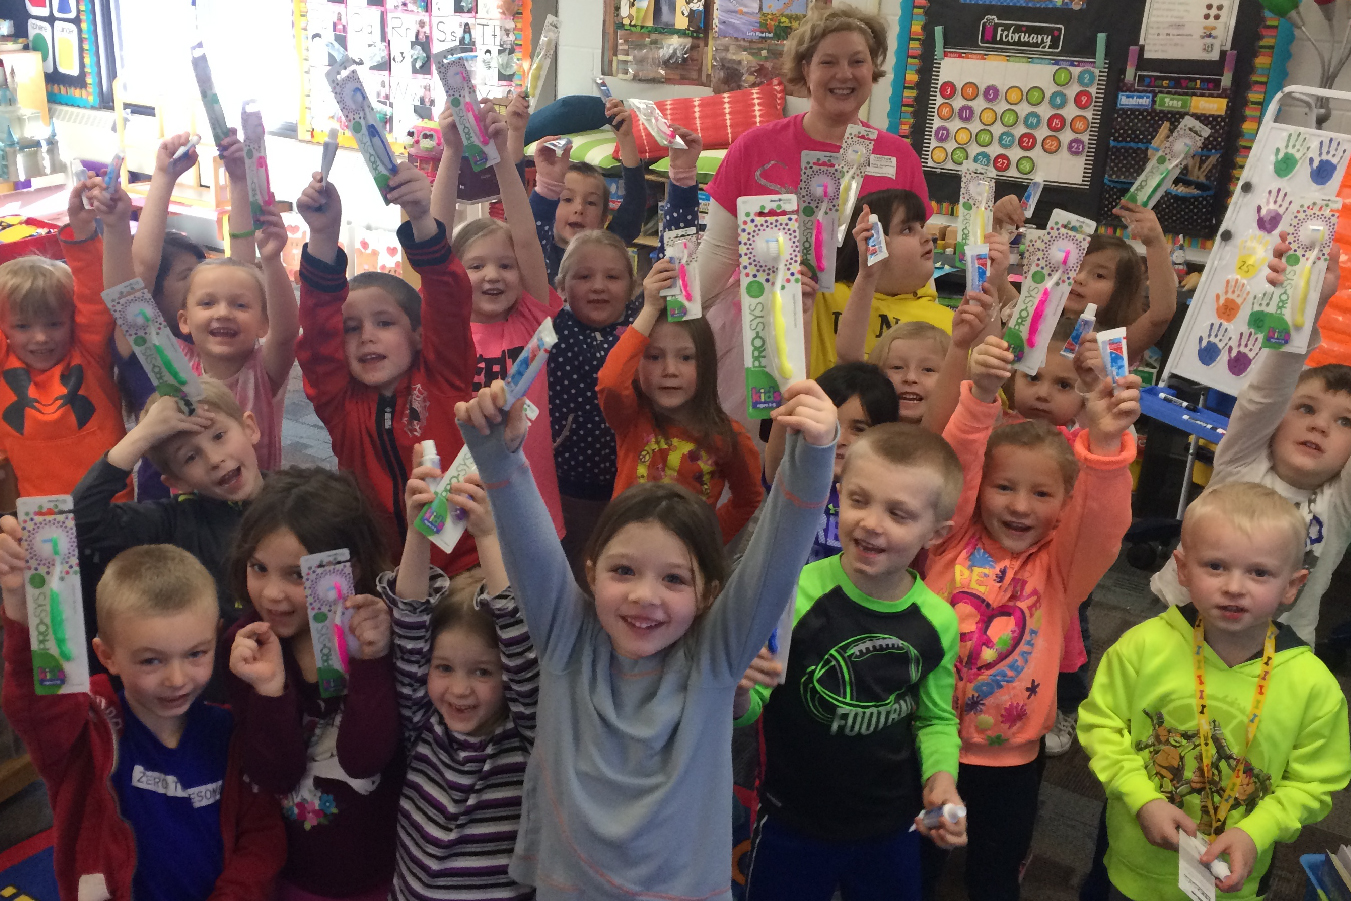 A group of children smile and show the toothbrushes and toothpaste they received from the Smile Fairy.